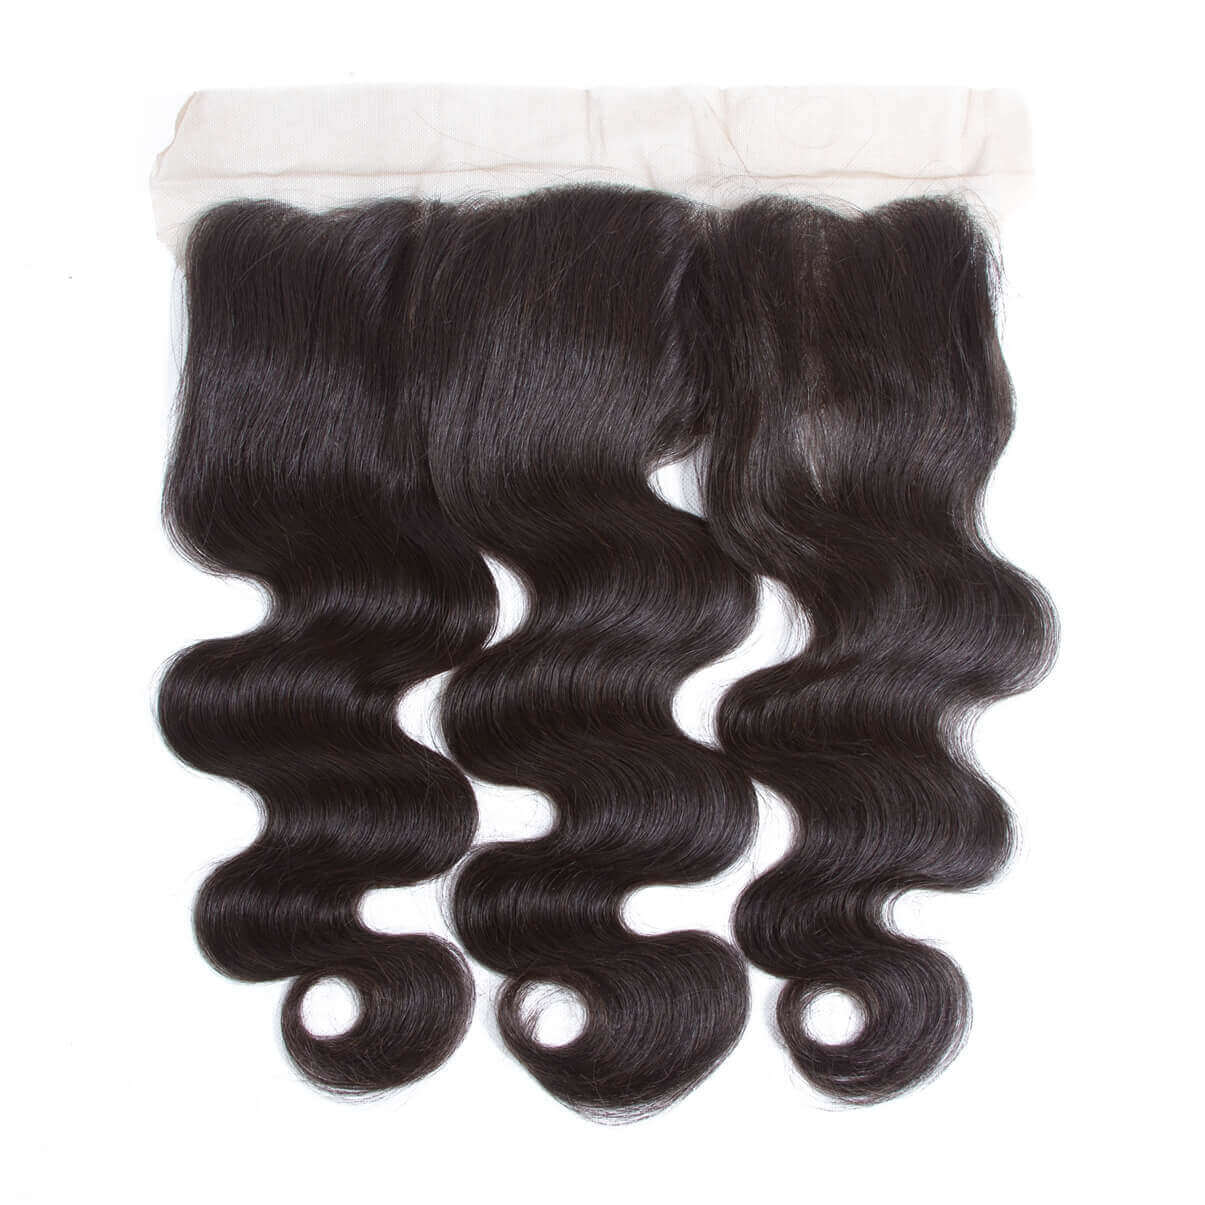 Lakihair 8A Brazilian Human Hair Body Wave 3 Bundles With Frontal Closure 13x4